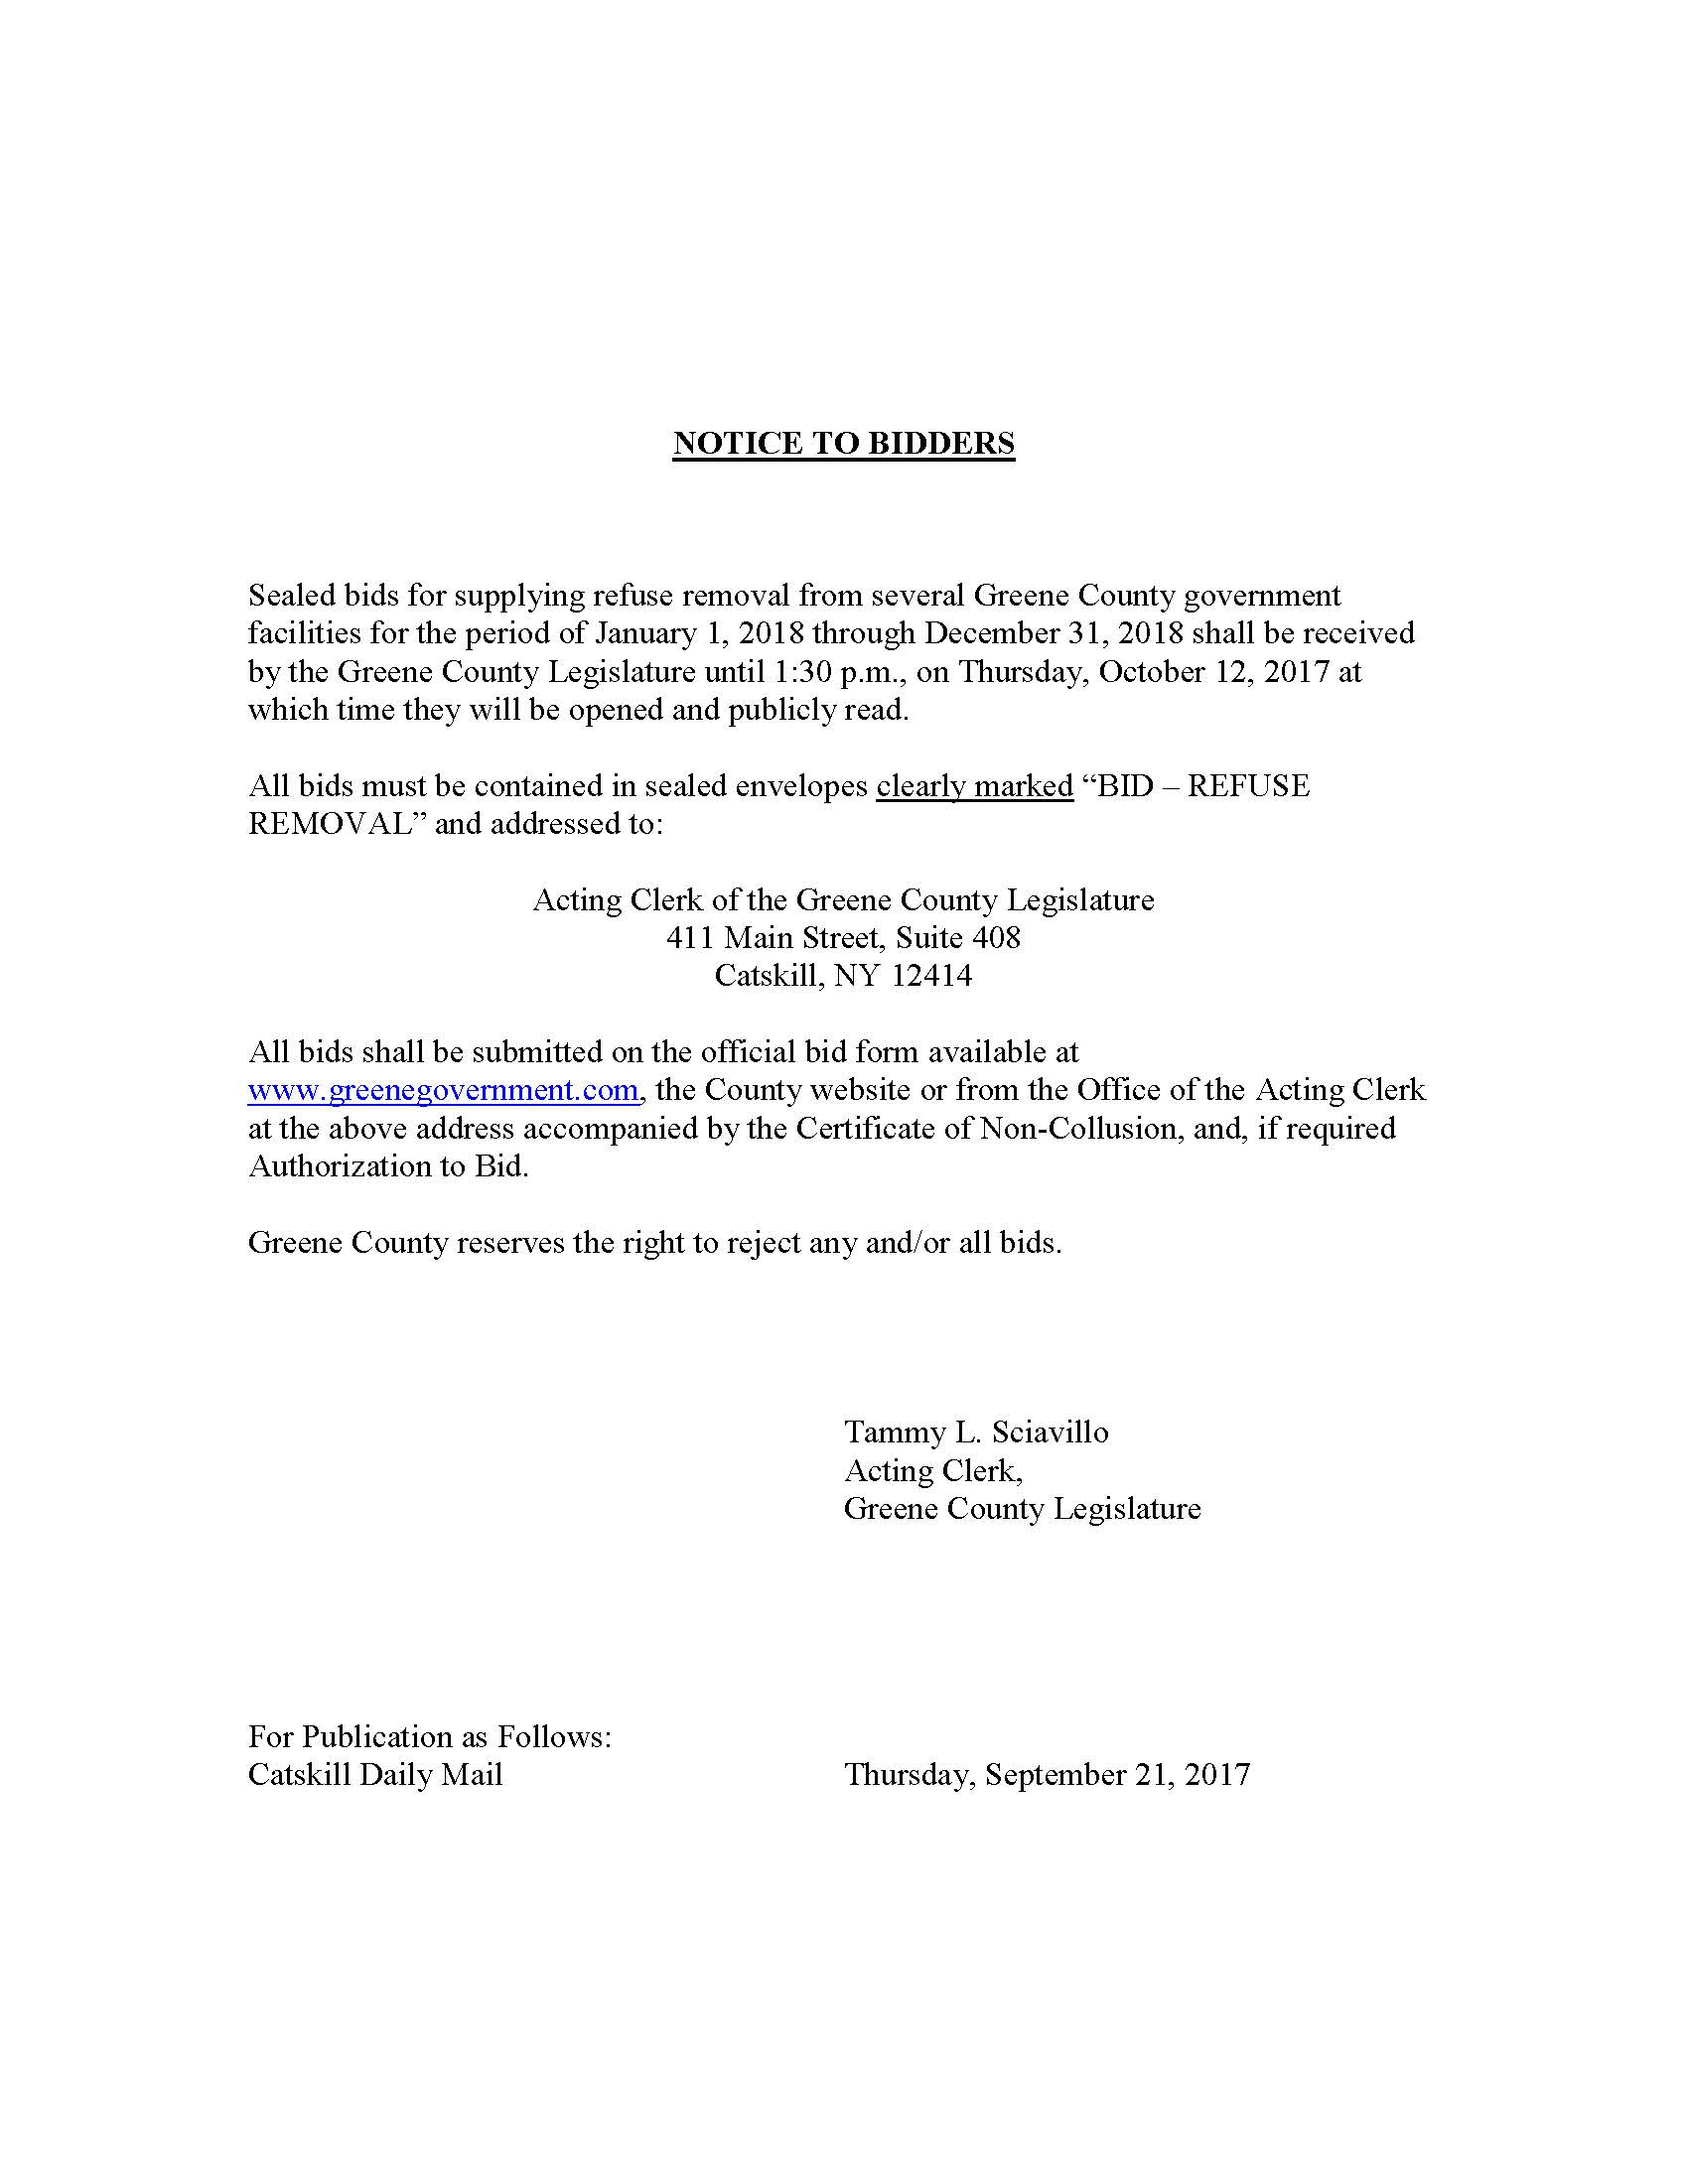 Notice To Bidders - Refuse Removal - Greene Government